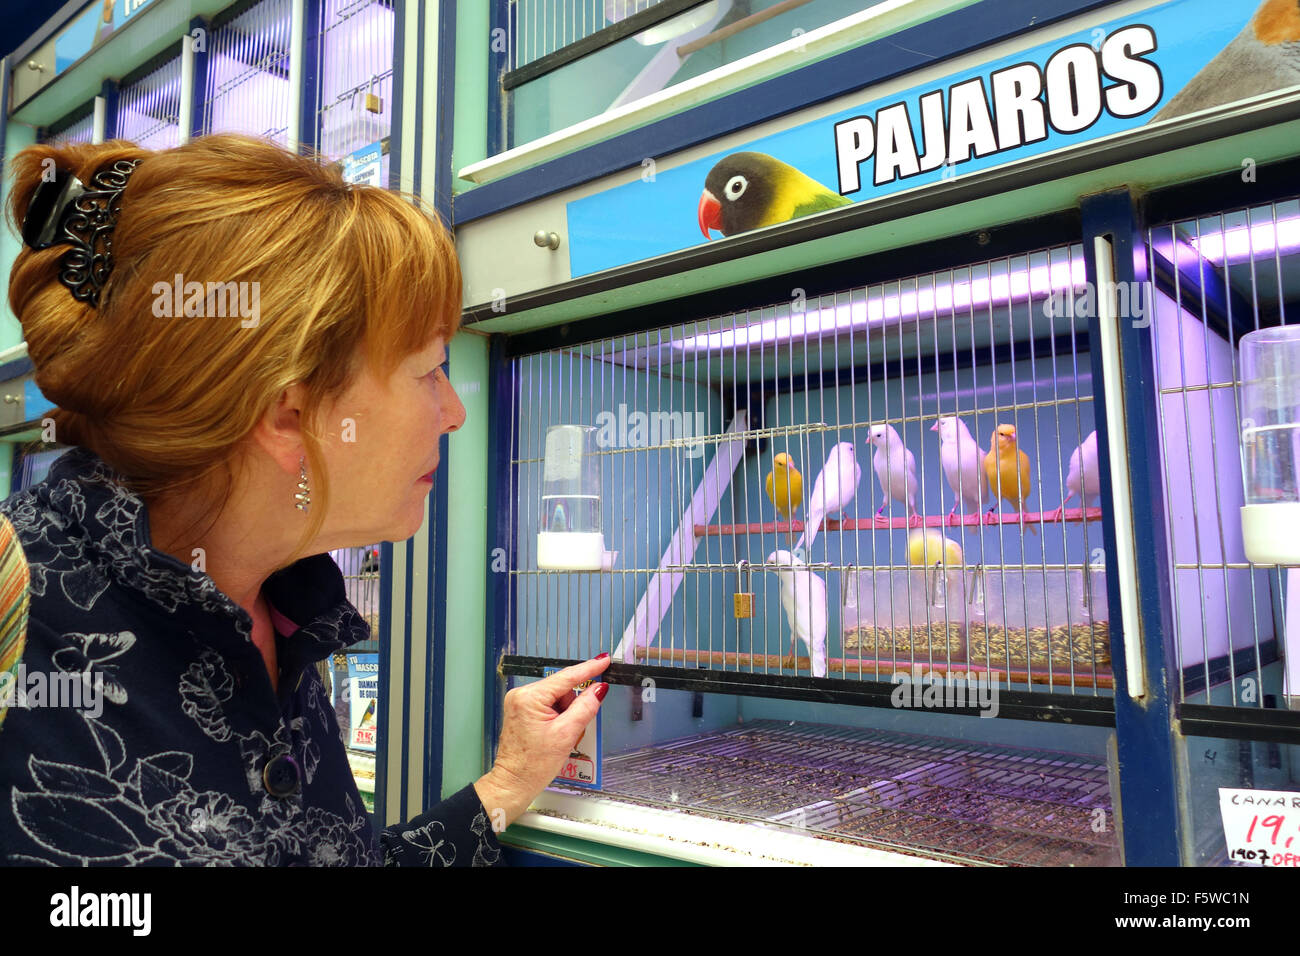 Caged birds canaries on sale in pet shop in Spain - Stock Image